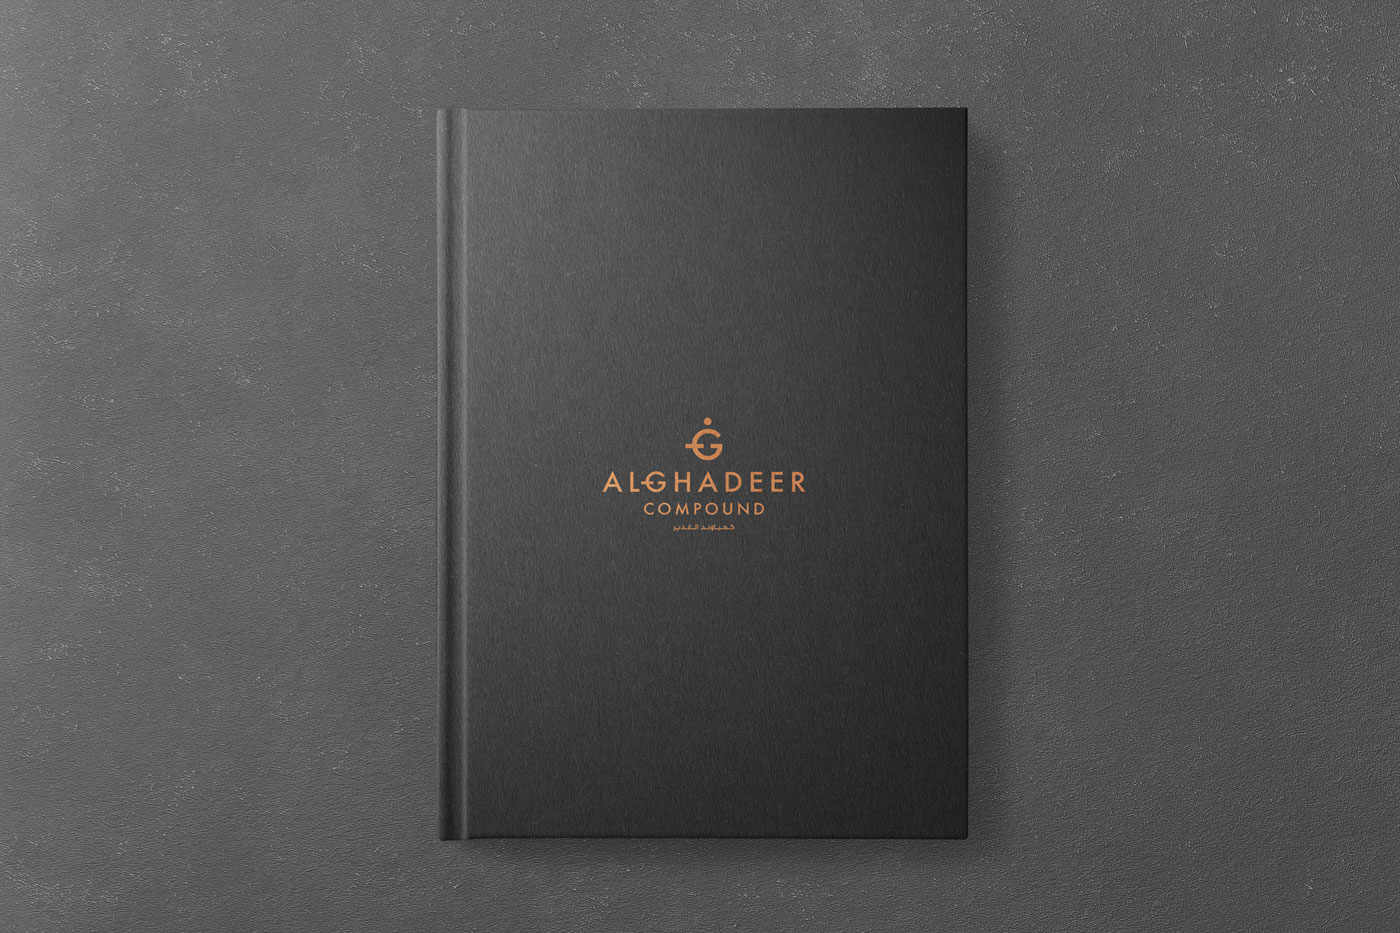 Alghadeer_Compound_Branding_g_Work_By_YaStudio